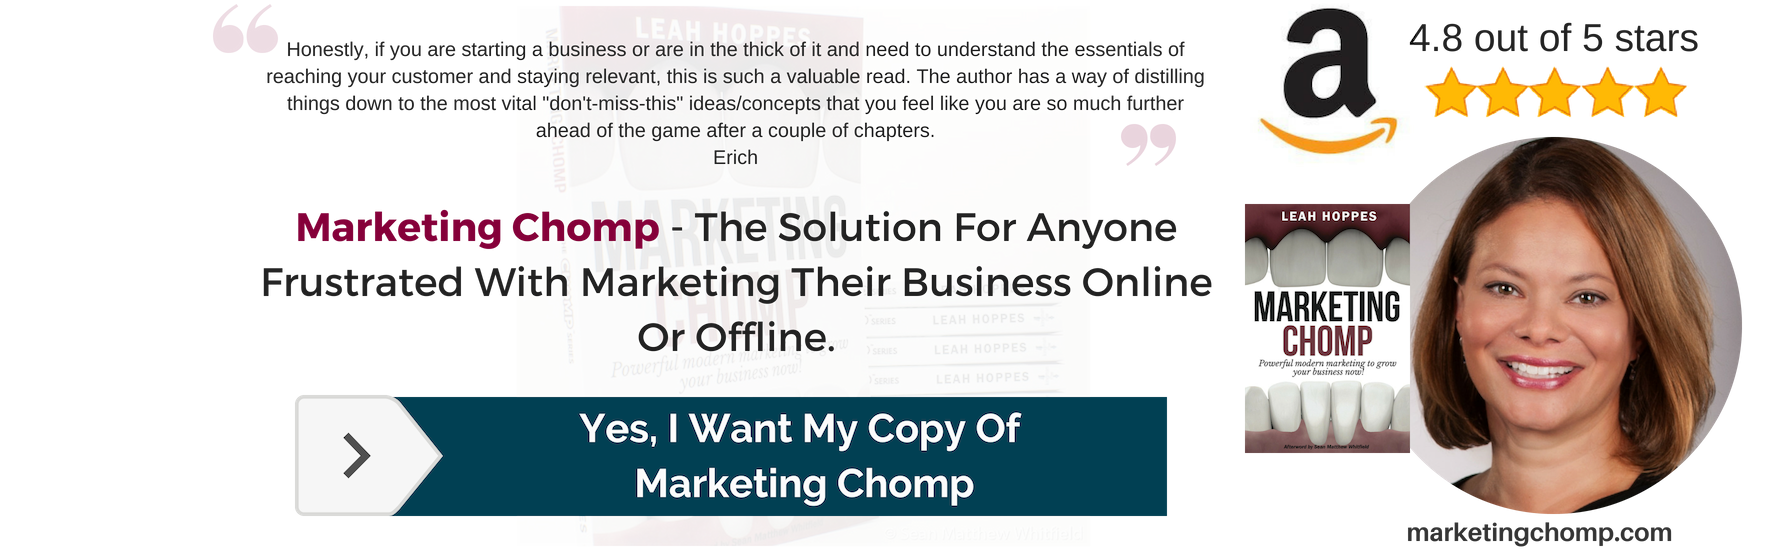 Buy Marketing Chomp Leah Hoppes